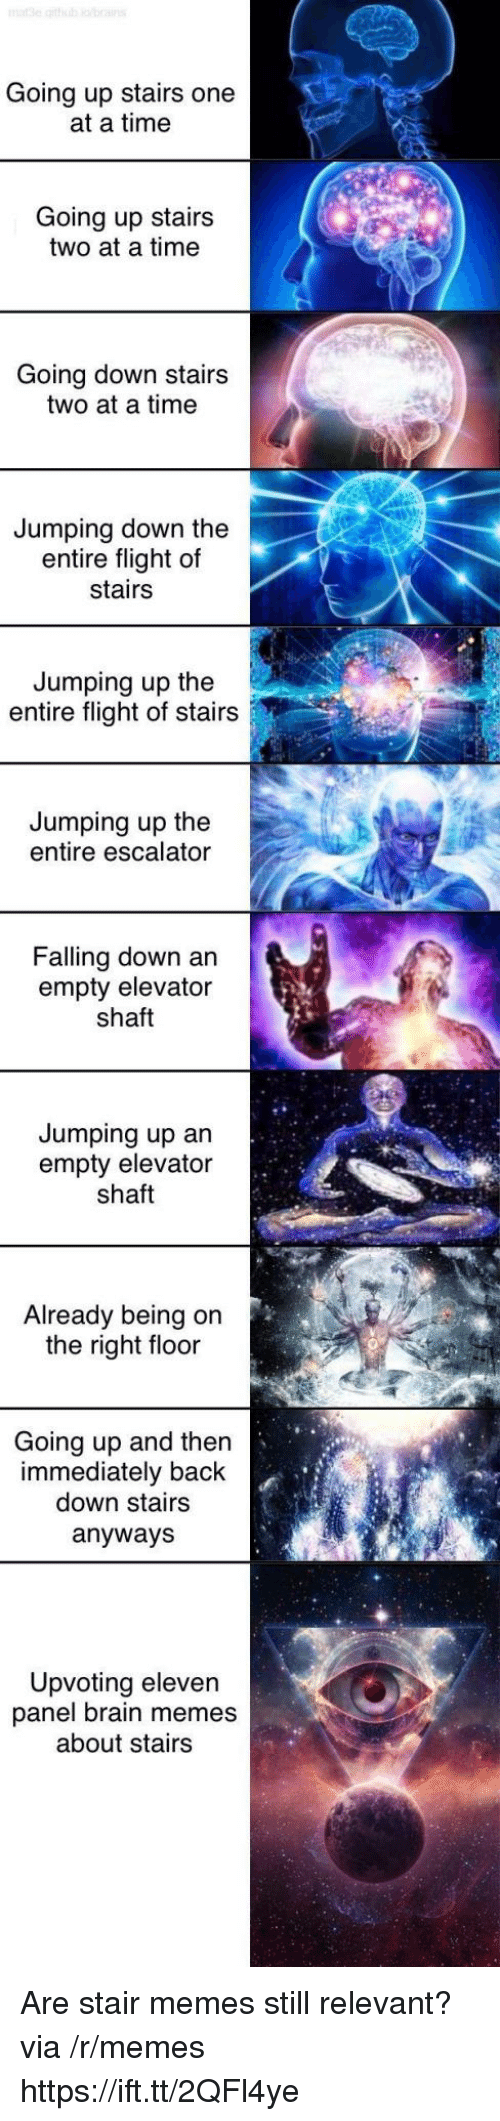 Memes, Brain, and Flight: Going up stairs one  at a time  Going up stairs  two at a time  Going down stairs  two at a time  Jumping down the  entire flight of  stairs  Jumping up the  entire flight of stairs  Jumping up the  entire escalator  Falling down an  empty elevator  shaft  Jumping up an  empty elevator  shaft  Already being on  the right floor  Going up and then  immediately back  down stairs  anyways  Upvoting eleven  panel brain memes  about stairs Are stair memes still relevant? via /r/memes https://ift.tt/2QFl4ye